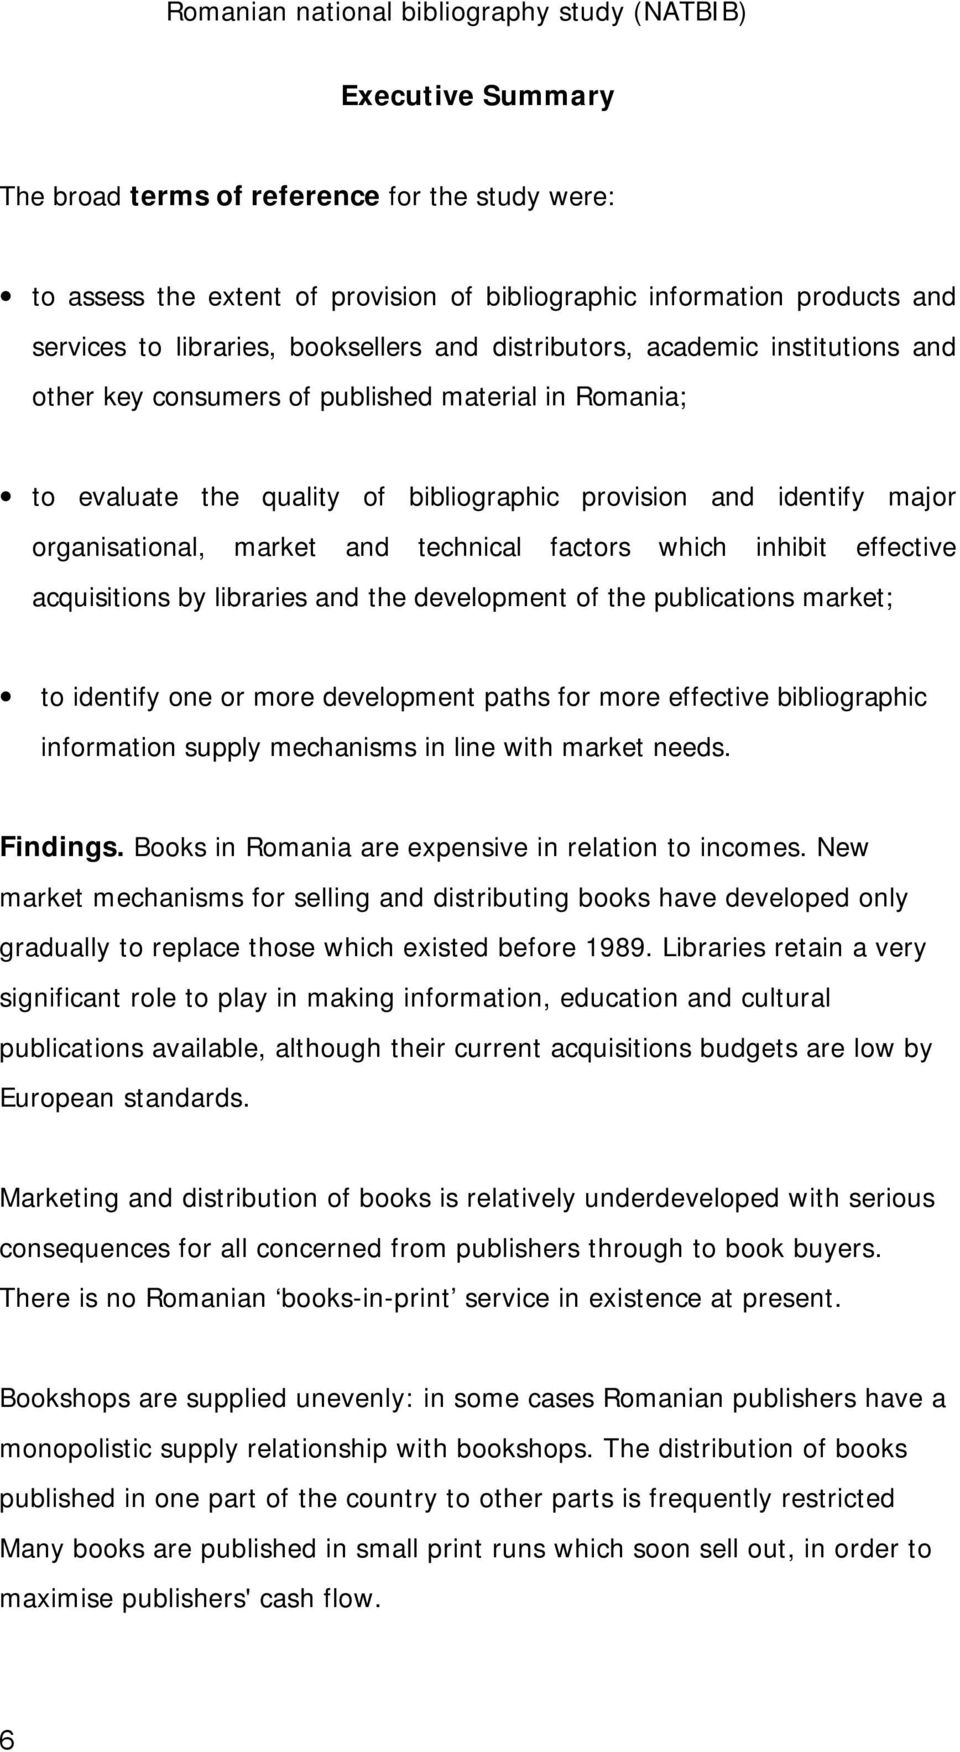 which inhibit effective acquisitions by libraries and the development of the publications market; to identify one or more development paths for more effective bibliographic information supply